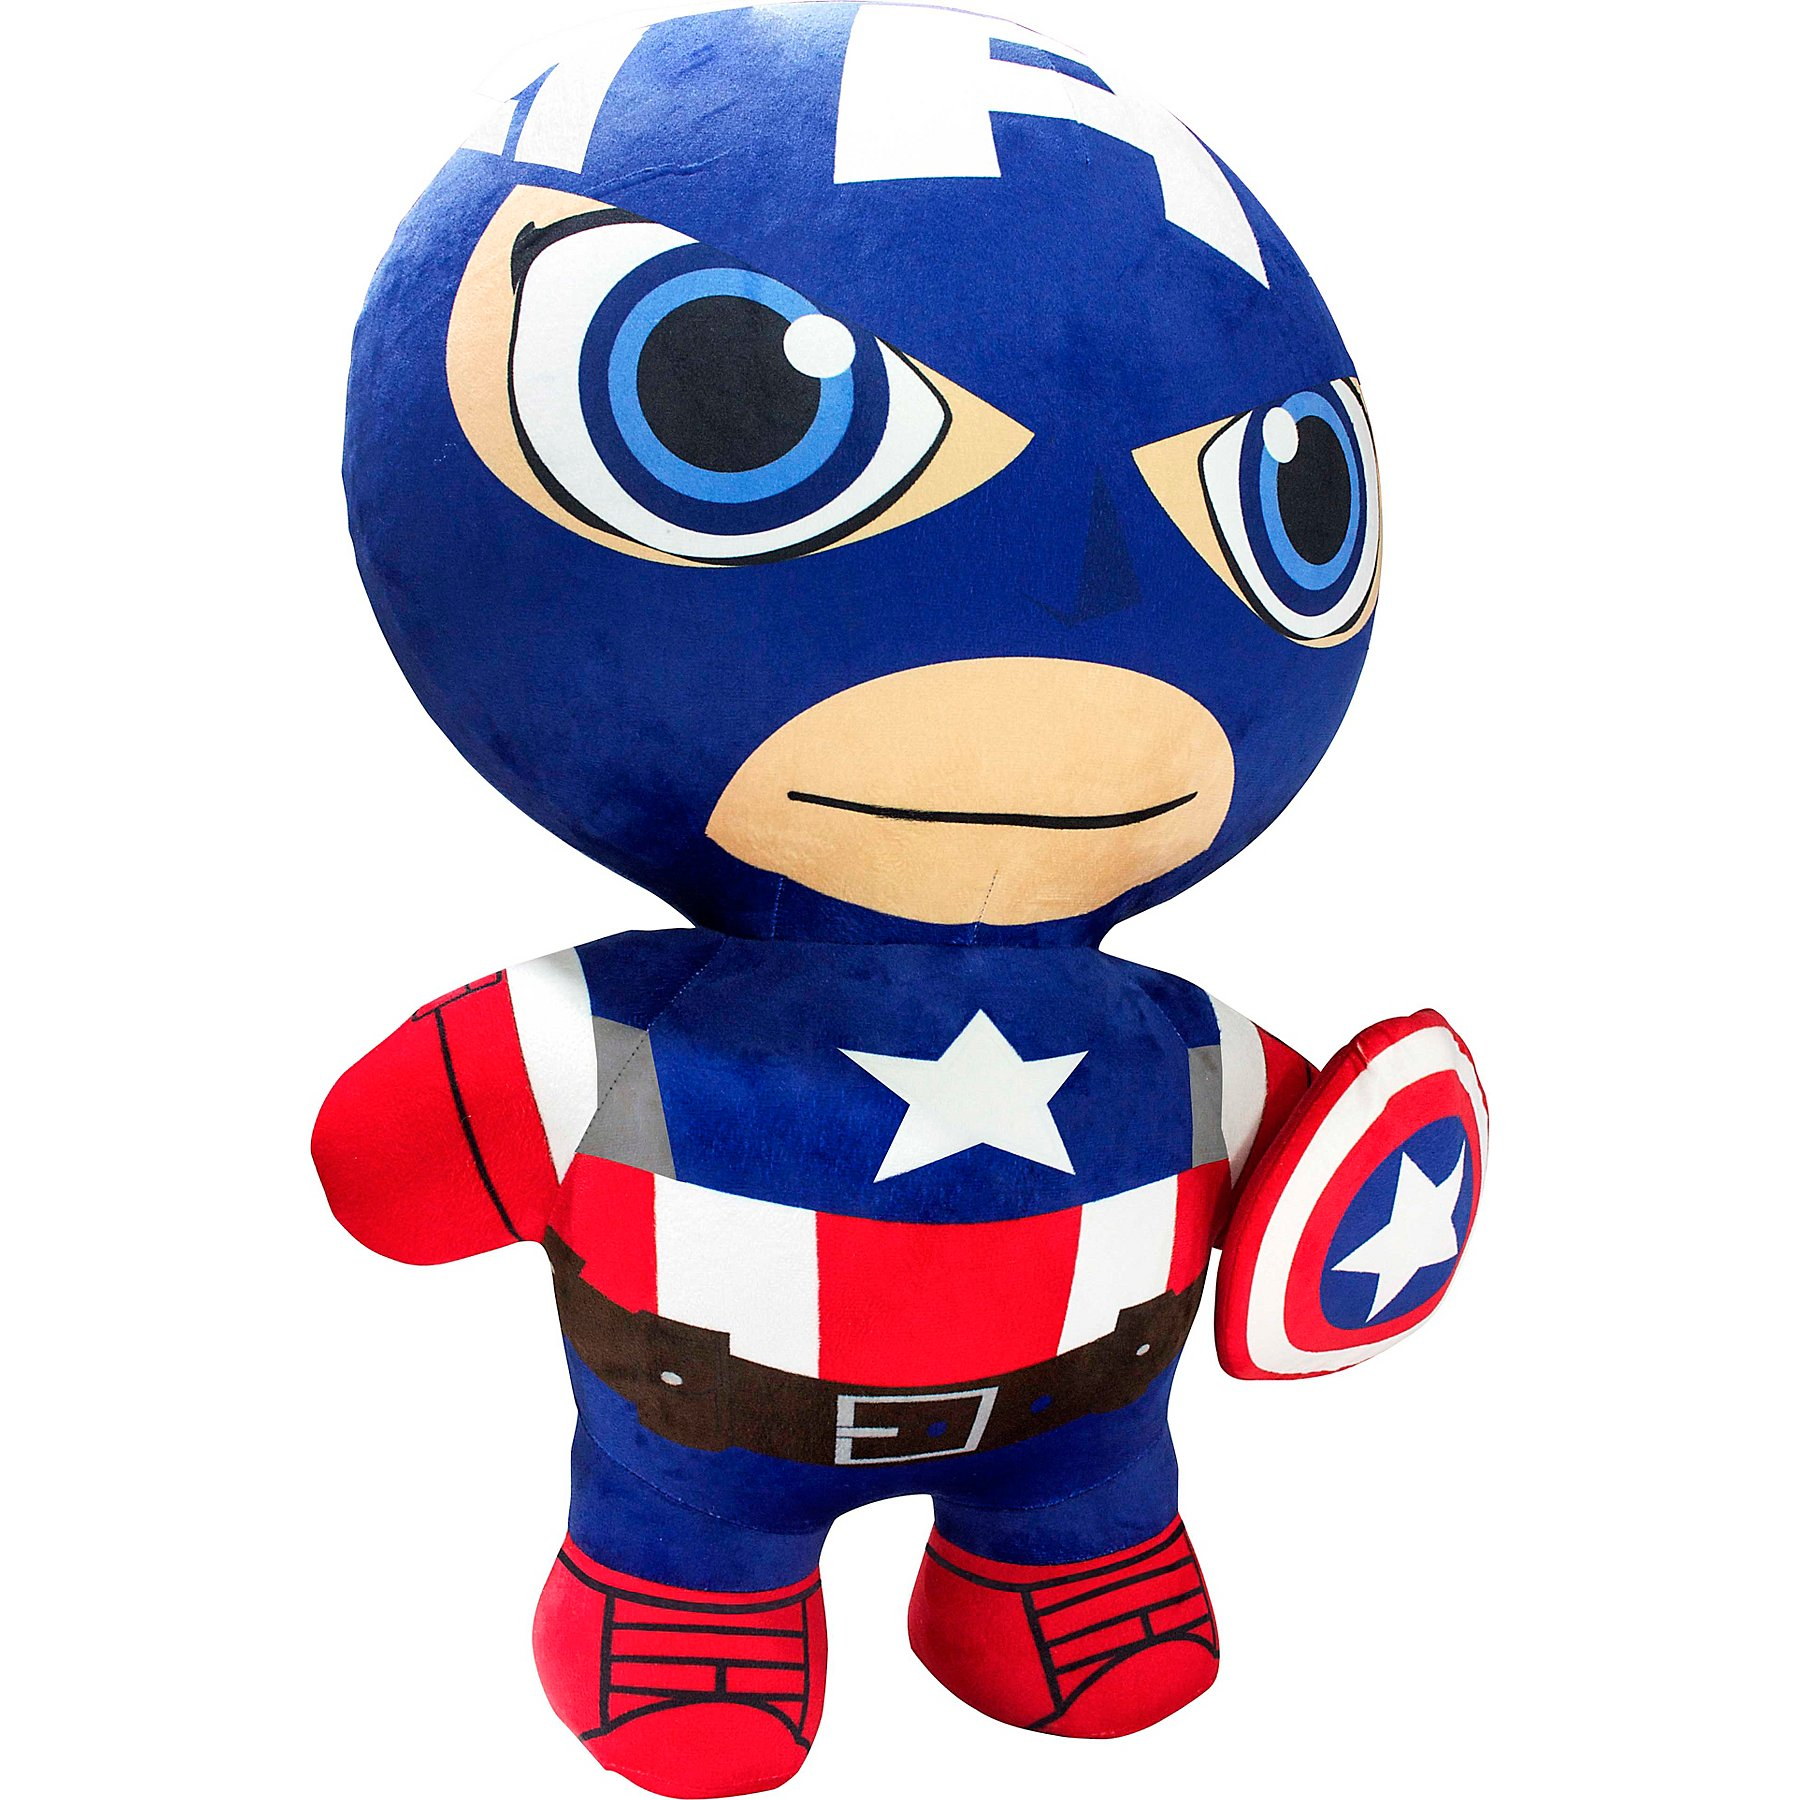 MARVEL AVENGERS INFINITY WAR SUPER HERO INFLATABLE PLUSH TOY INFLATE-A-HEROES